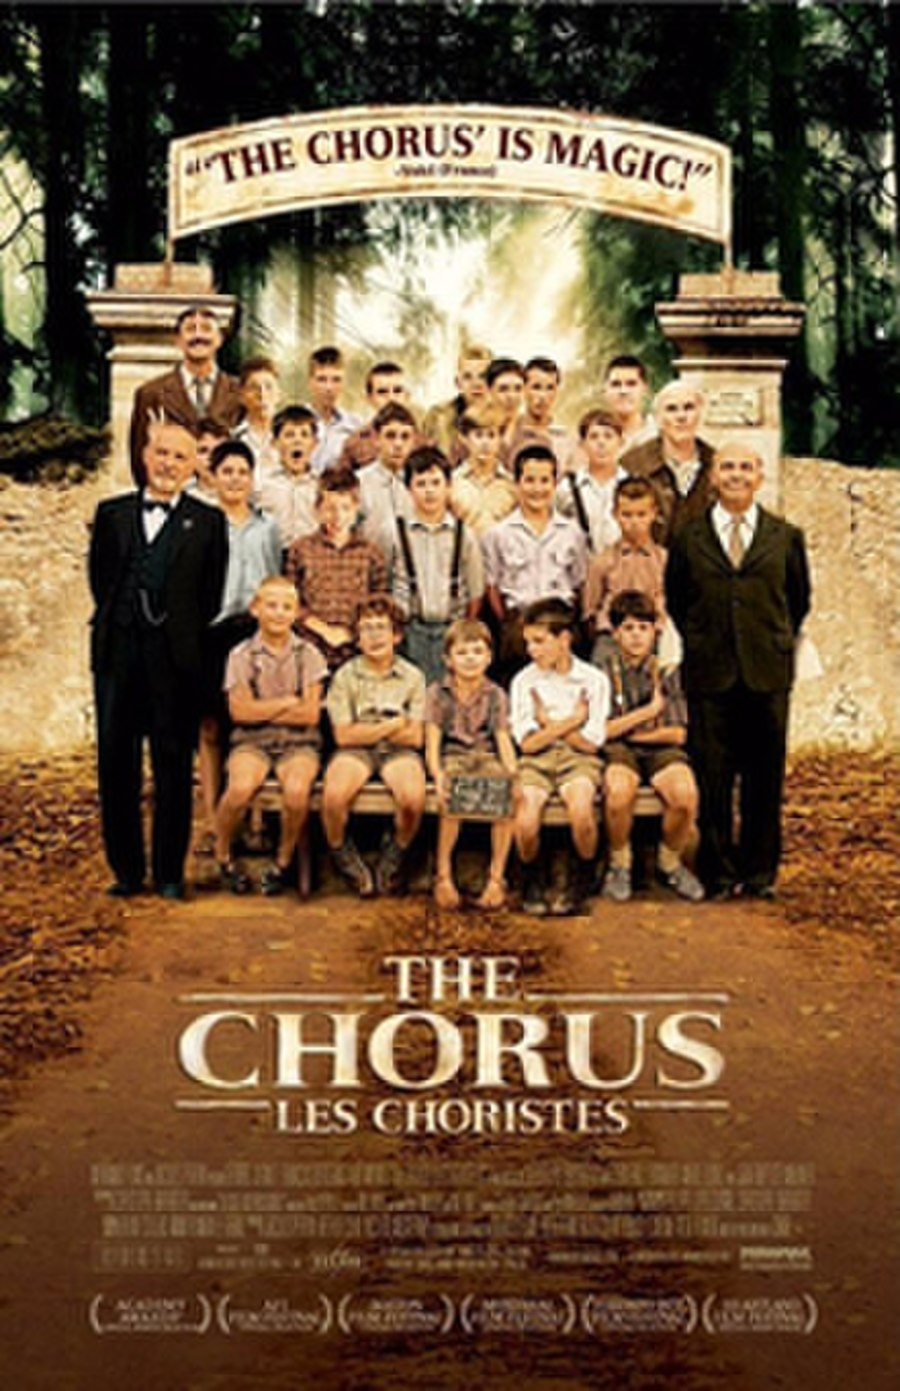 The Choristers